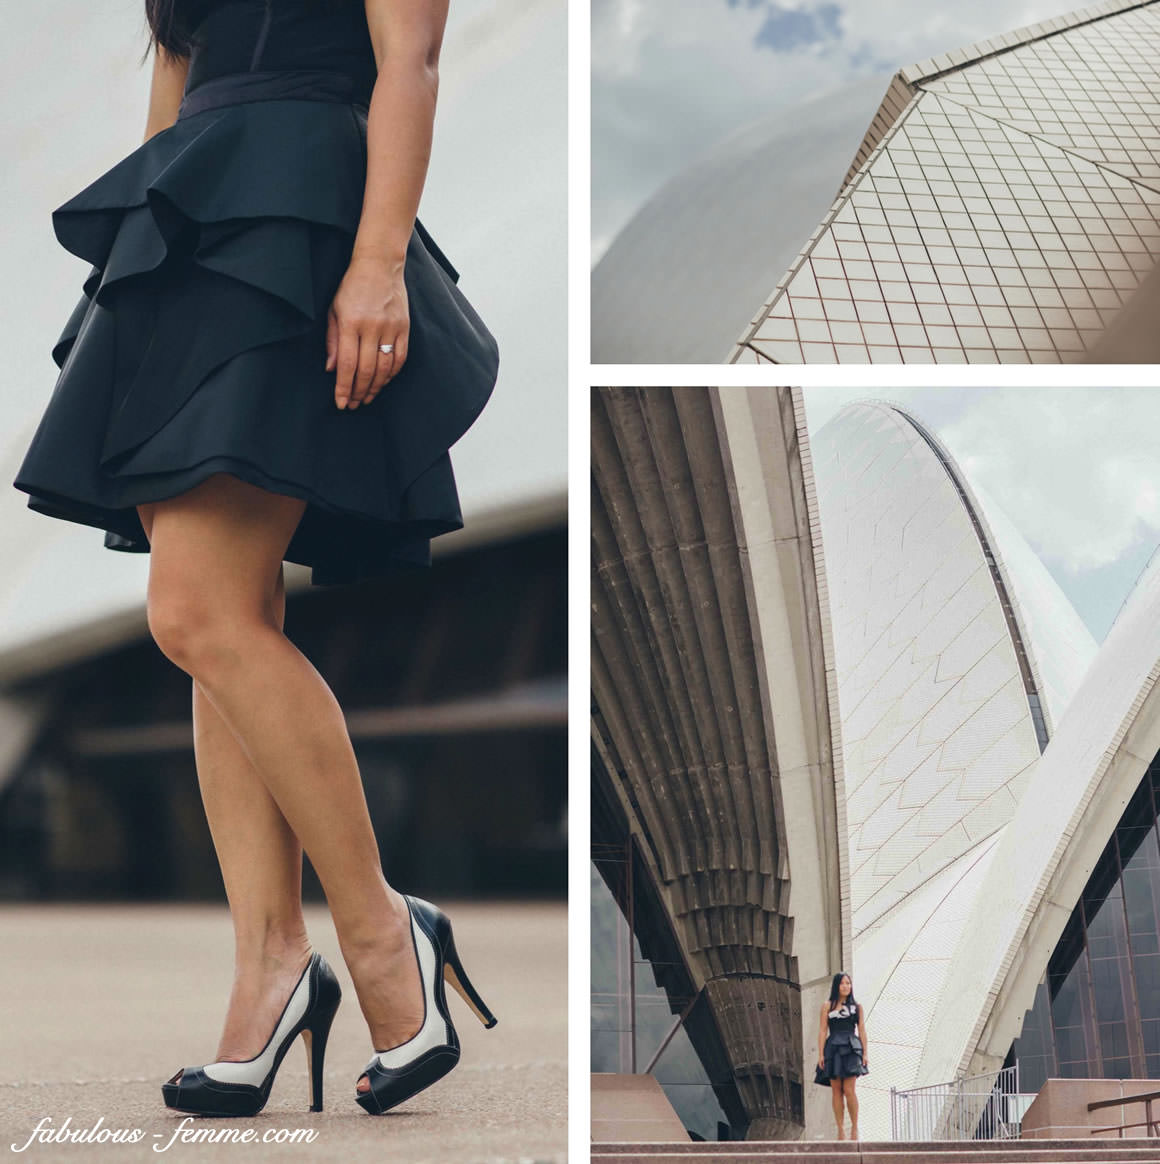 dress by karen millen - sydney blog